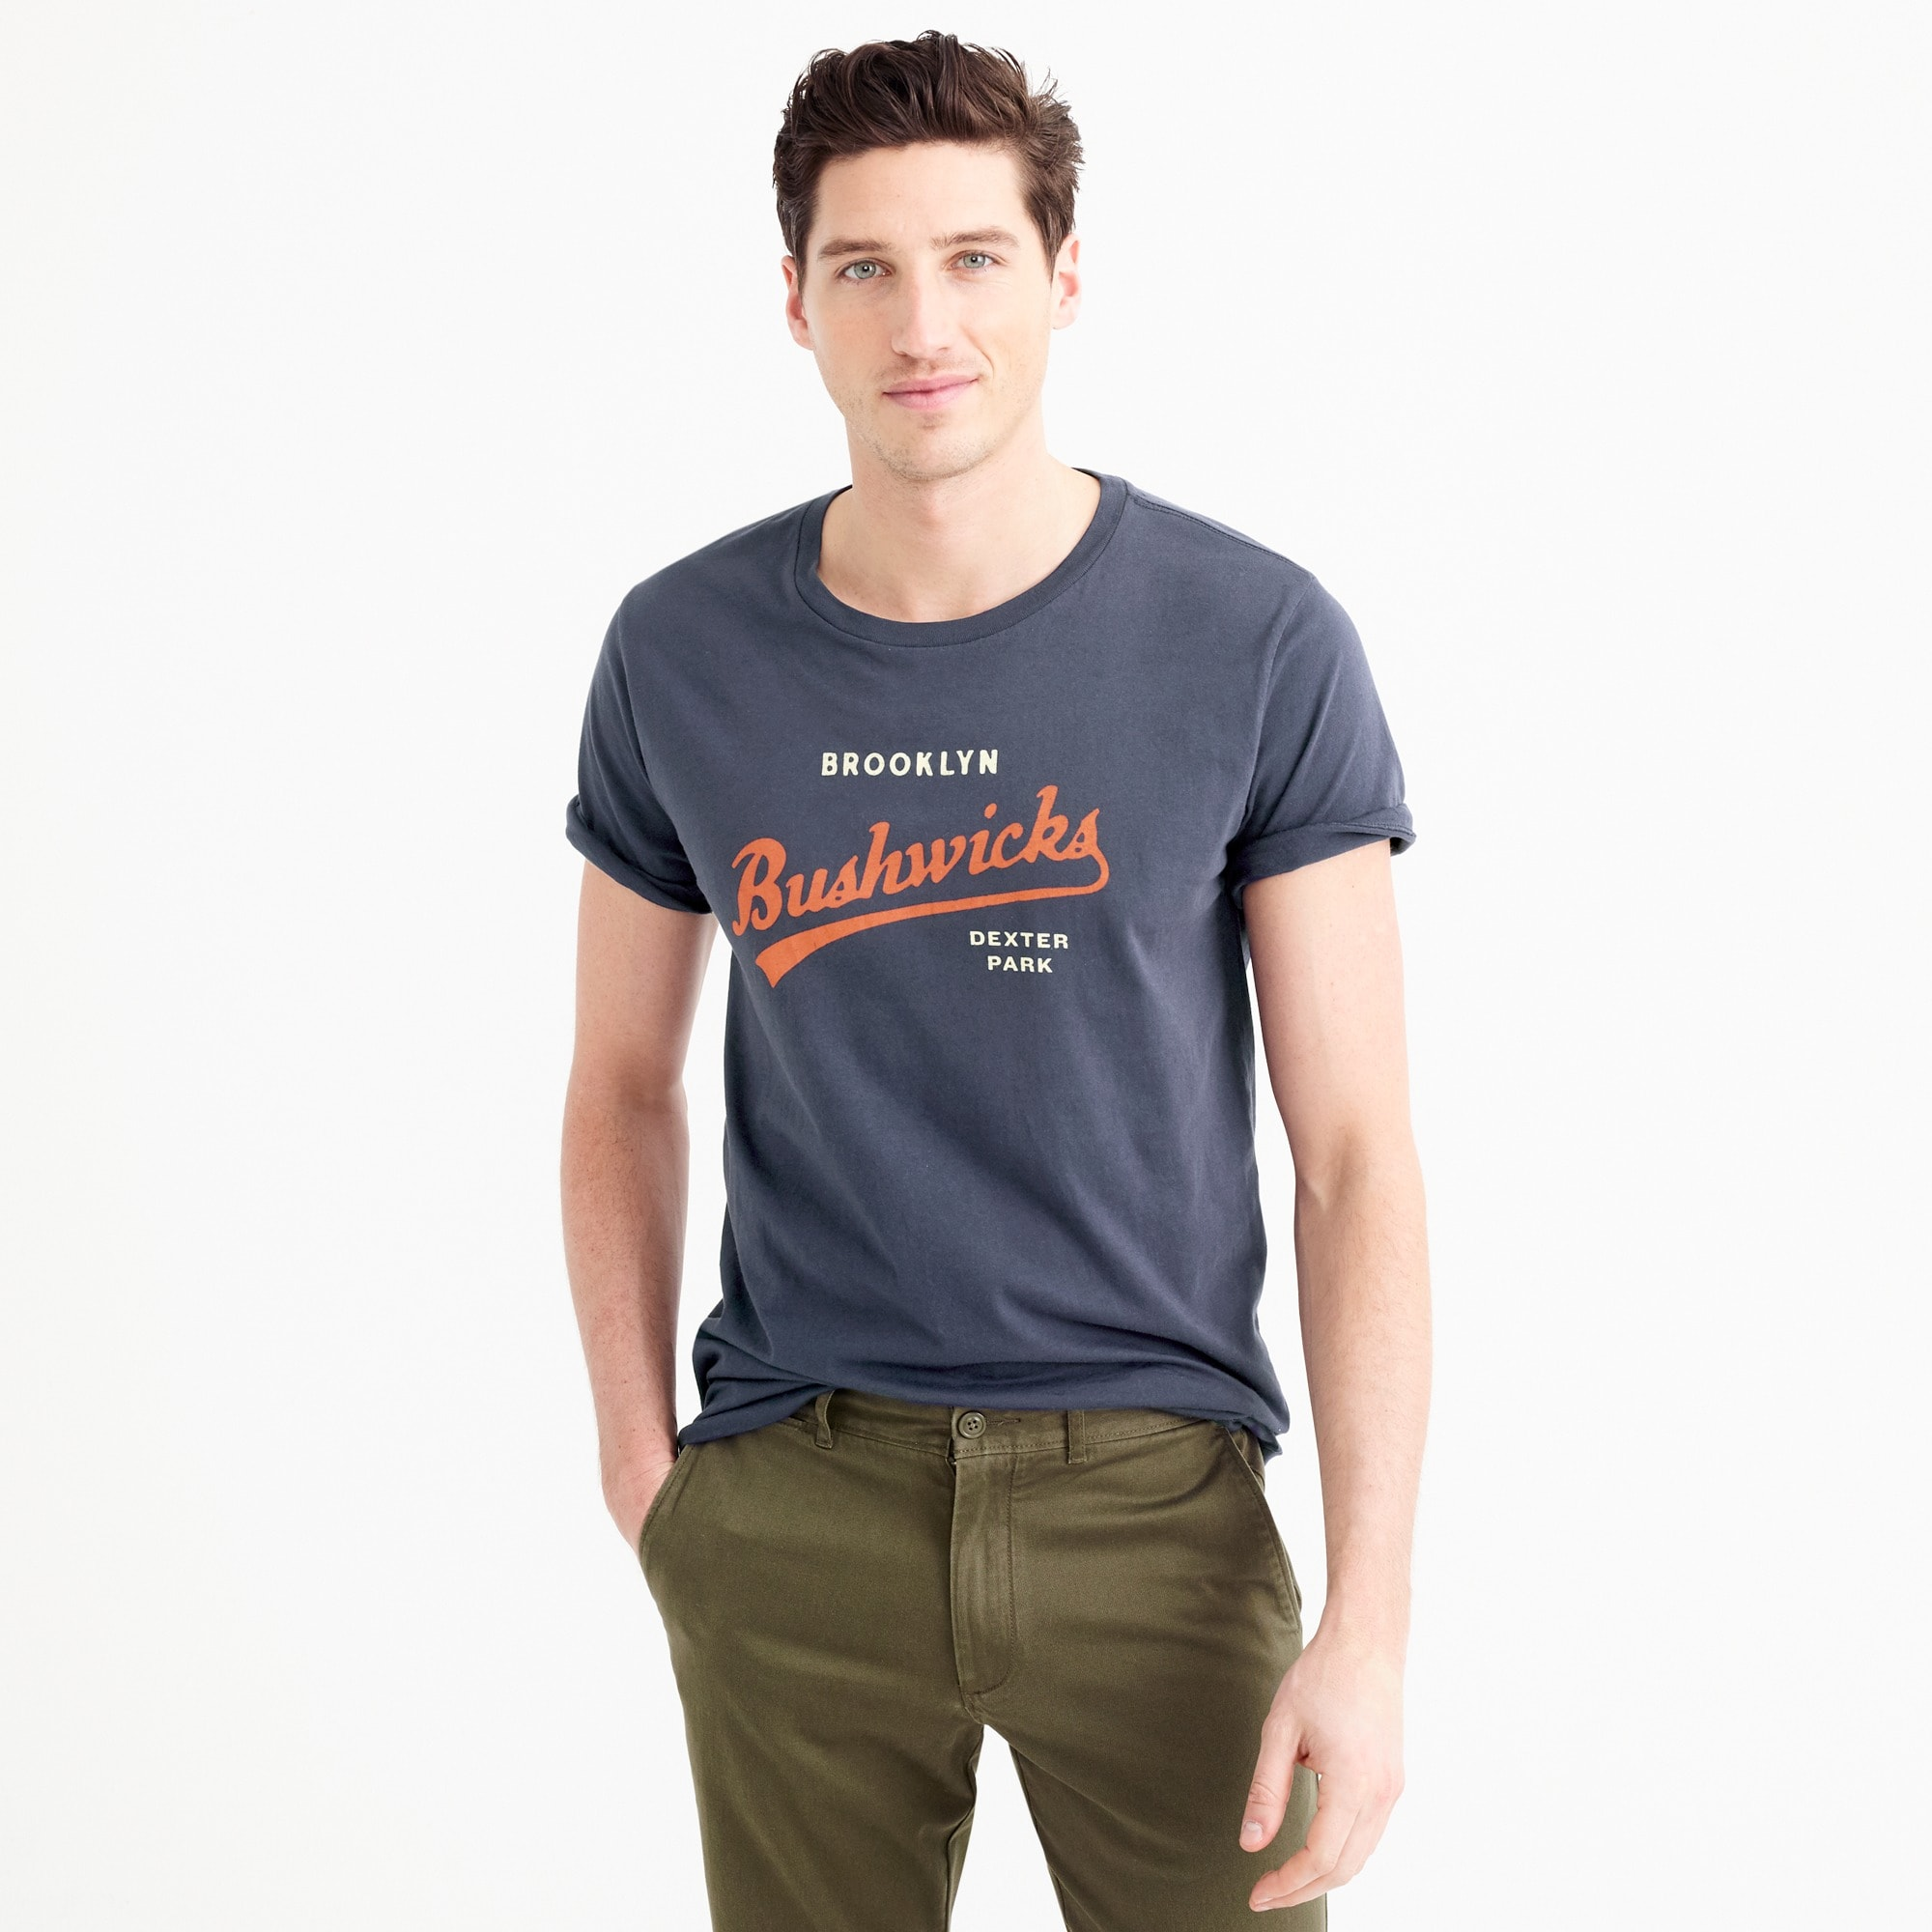 Image 1 for Ebbets Field Flannels® for J.Crew Brooklyn Bushwicks T-shirt